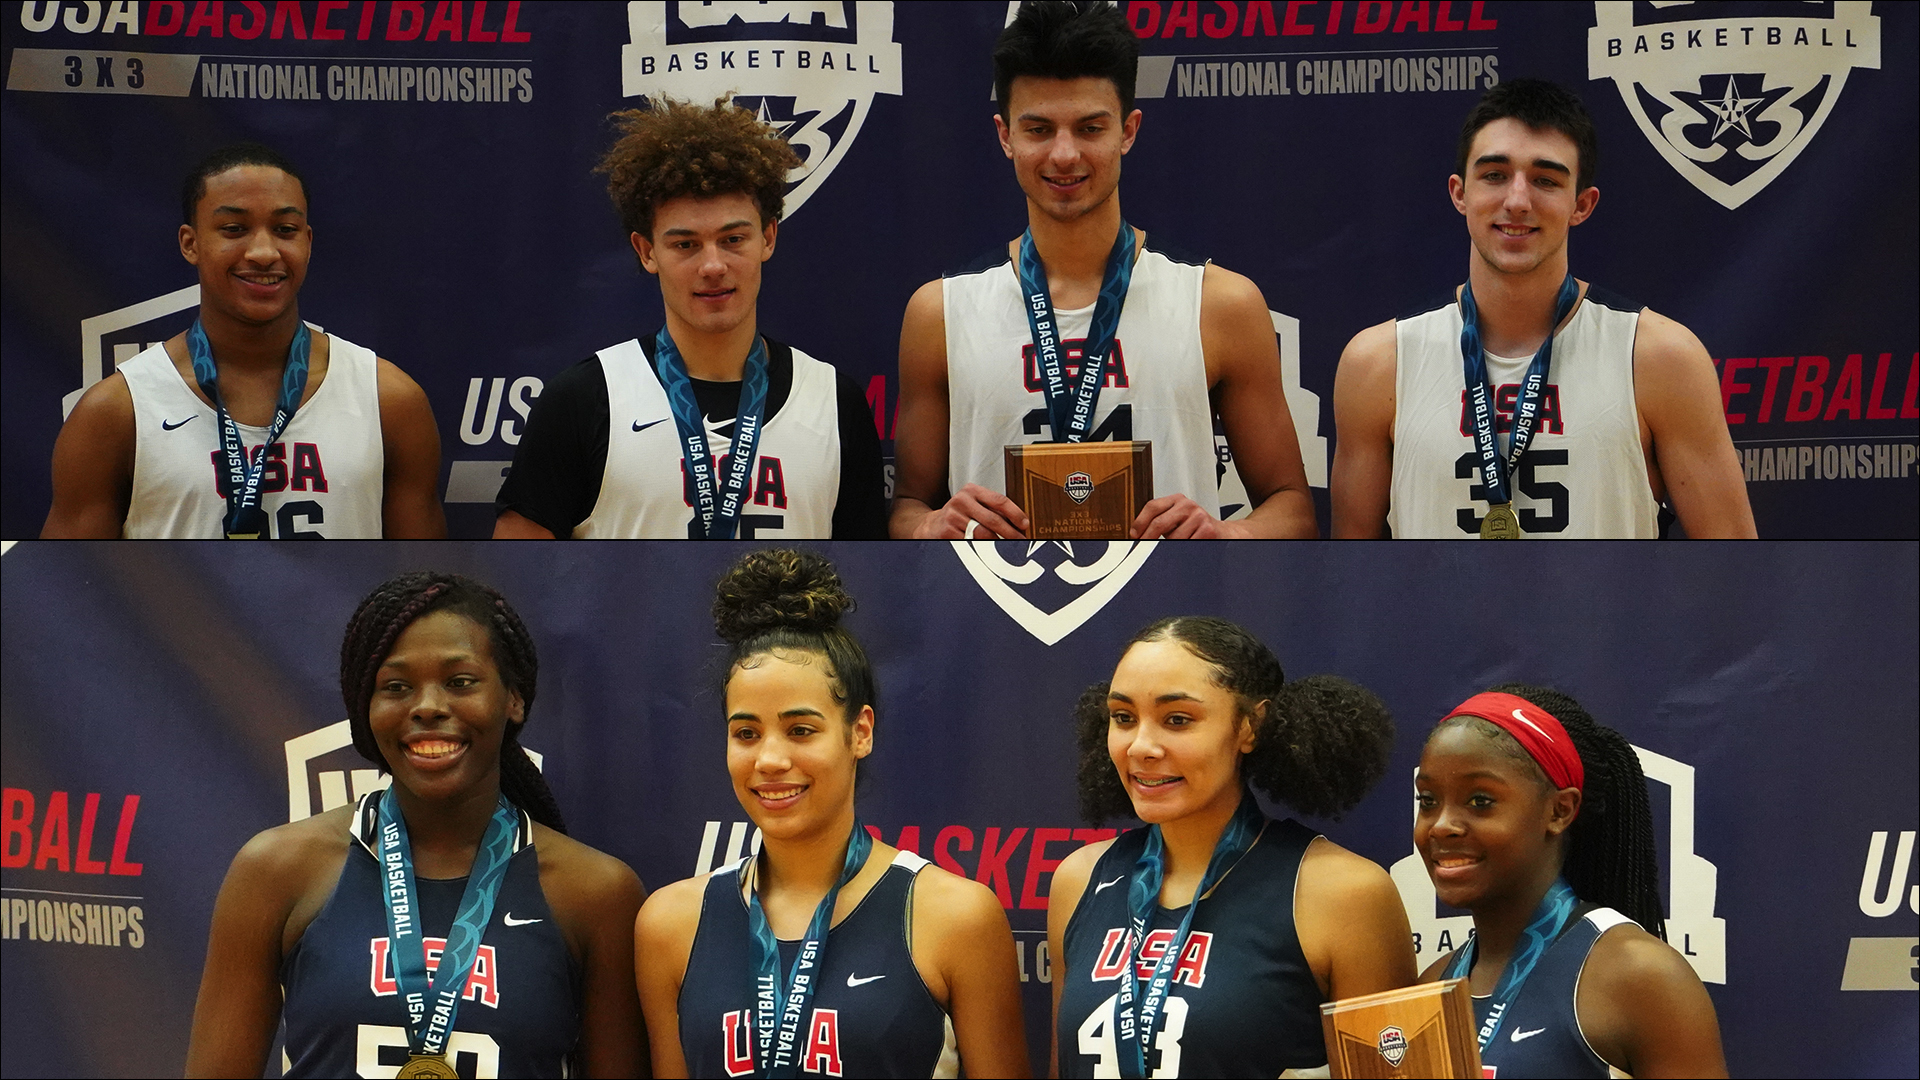 2019 USA Basketball 3x3 U18 Gold MEdalists